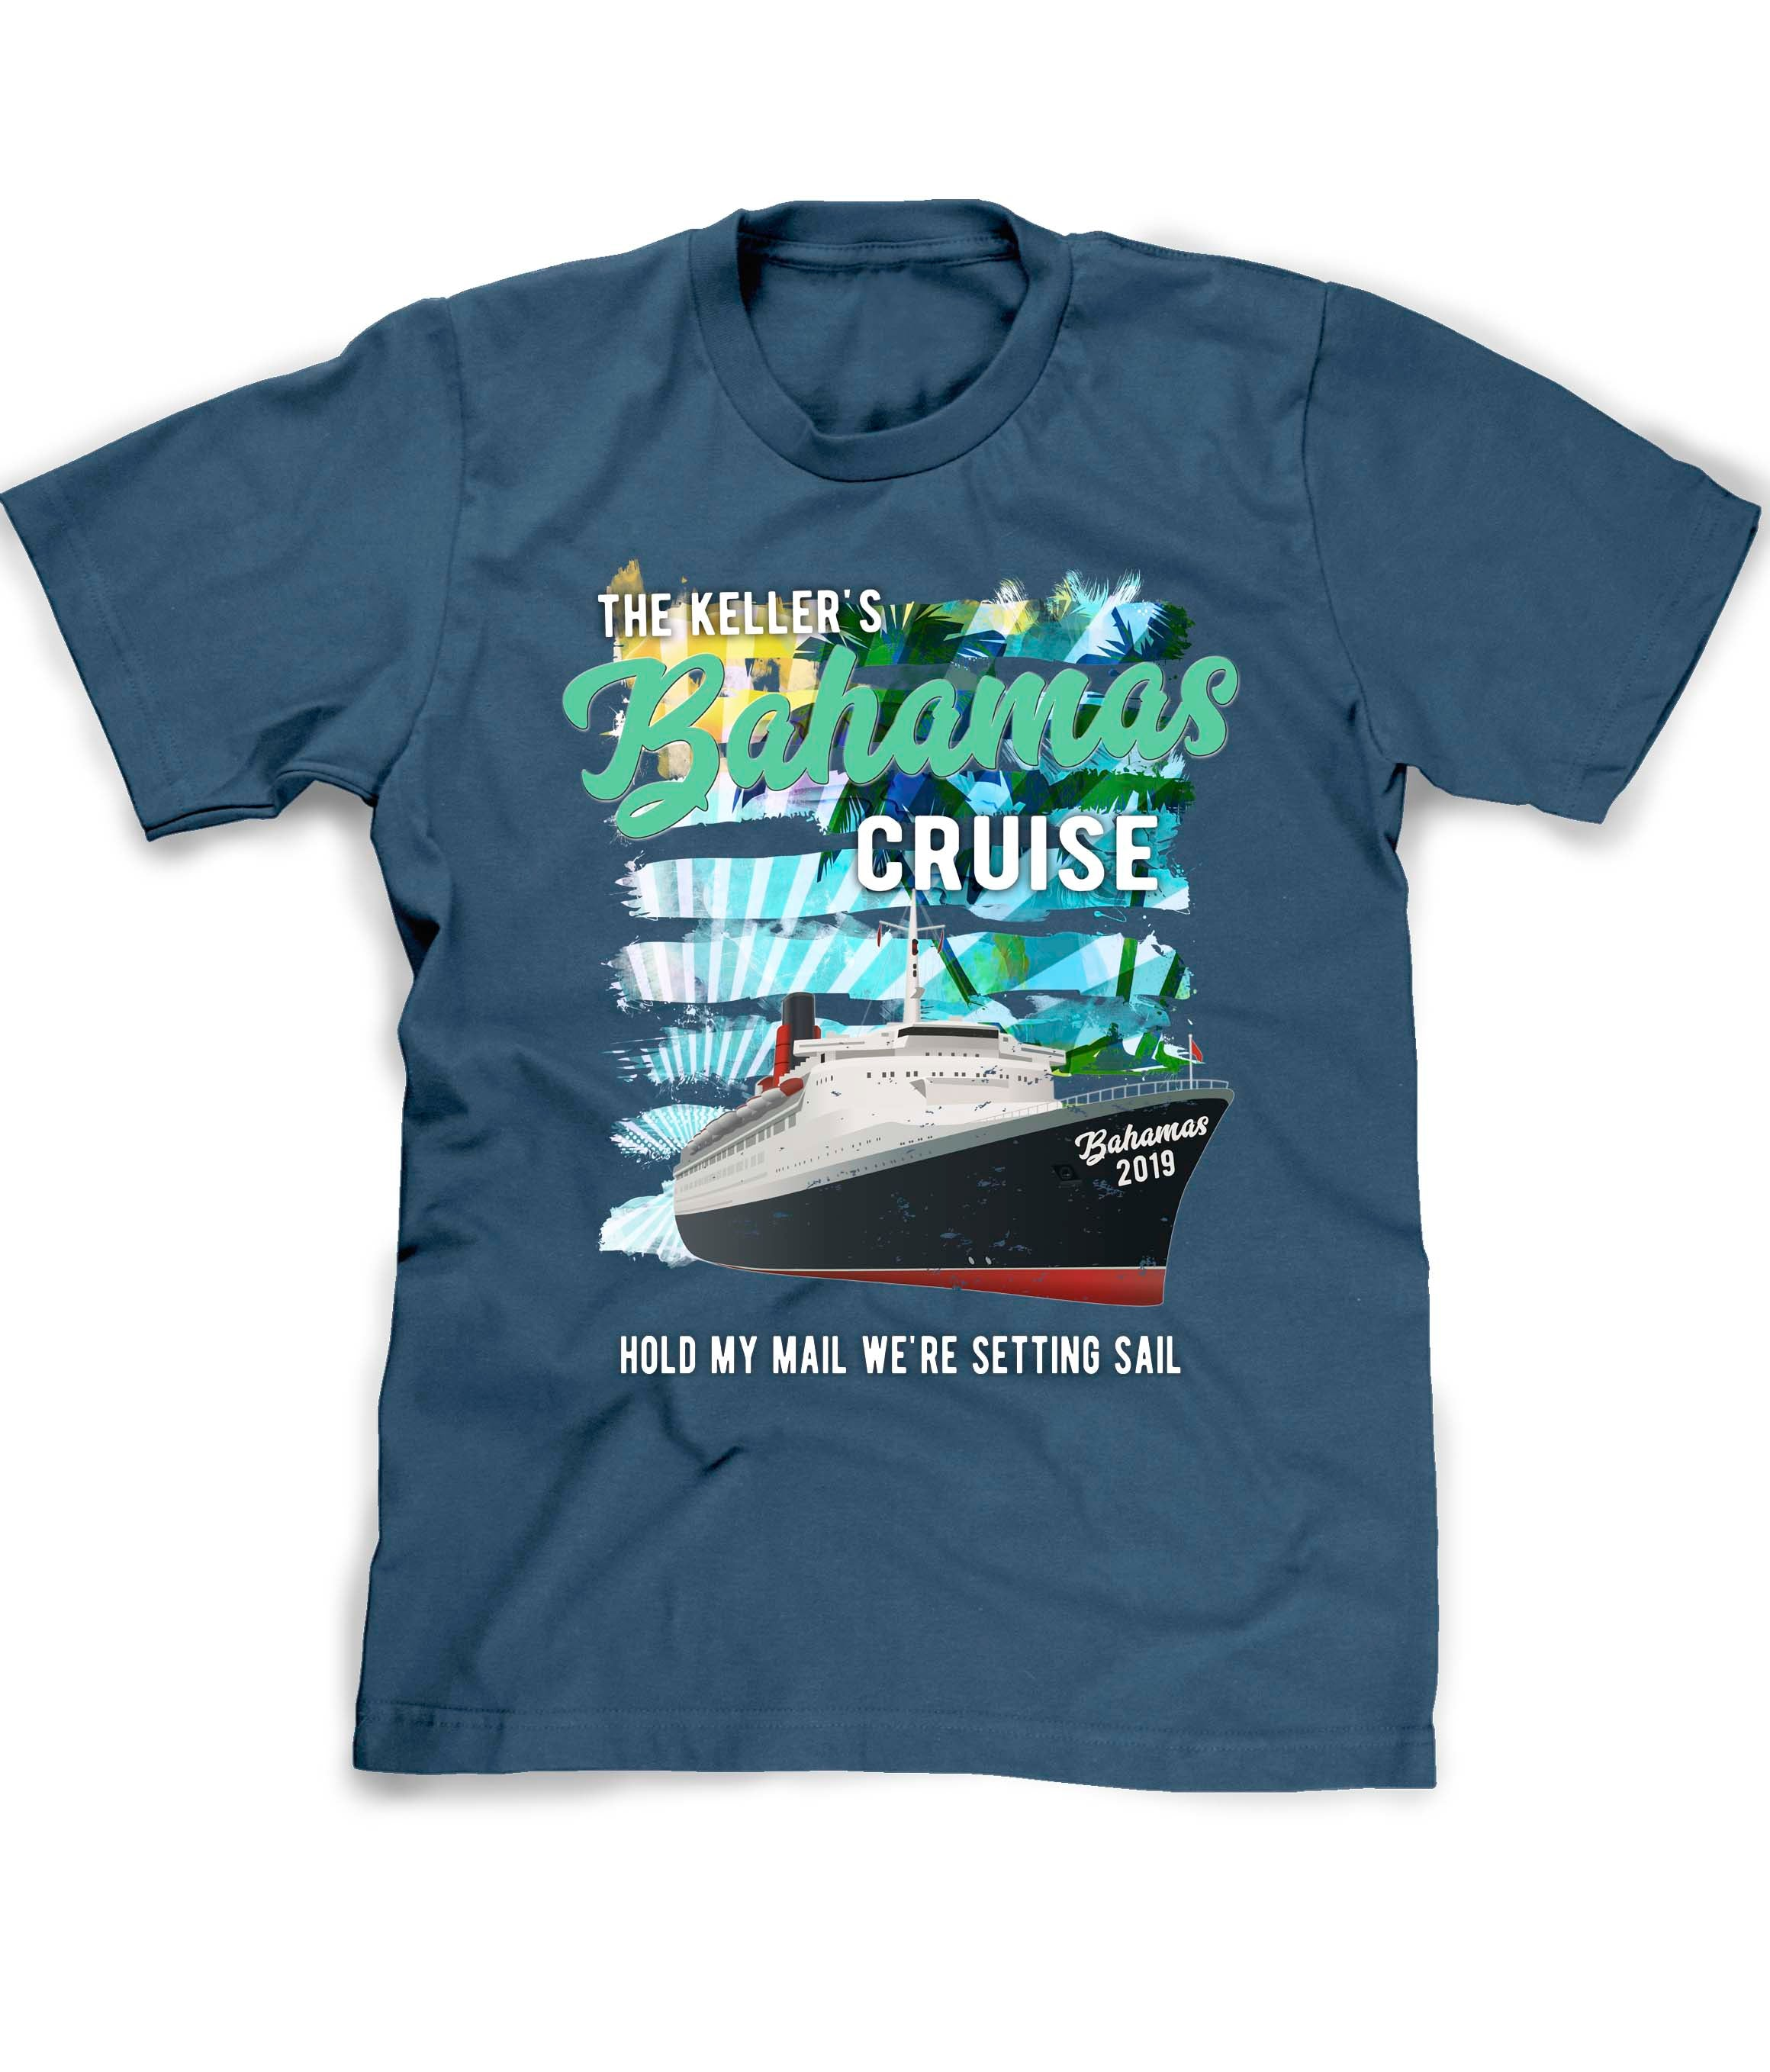 Custom cruise vacation shirt in blue